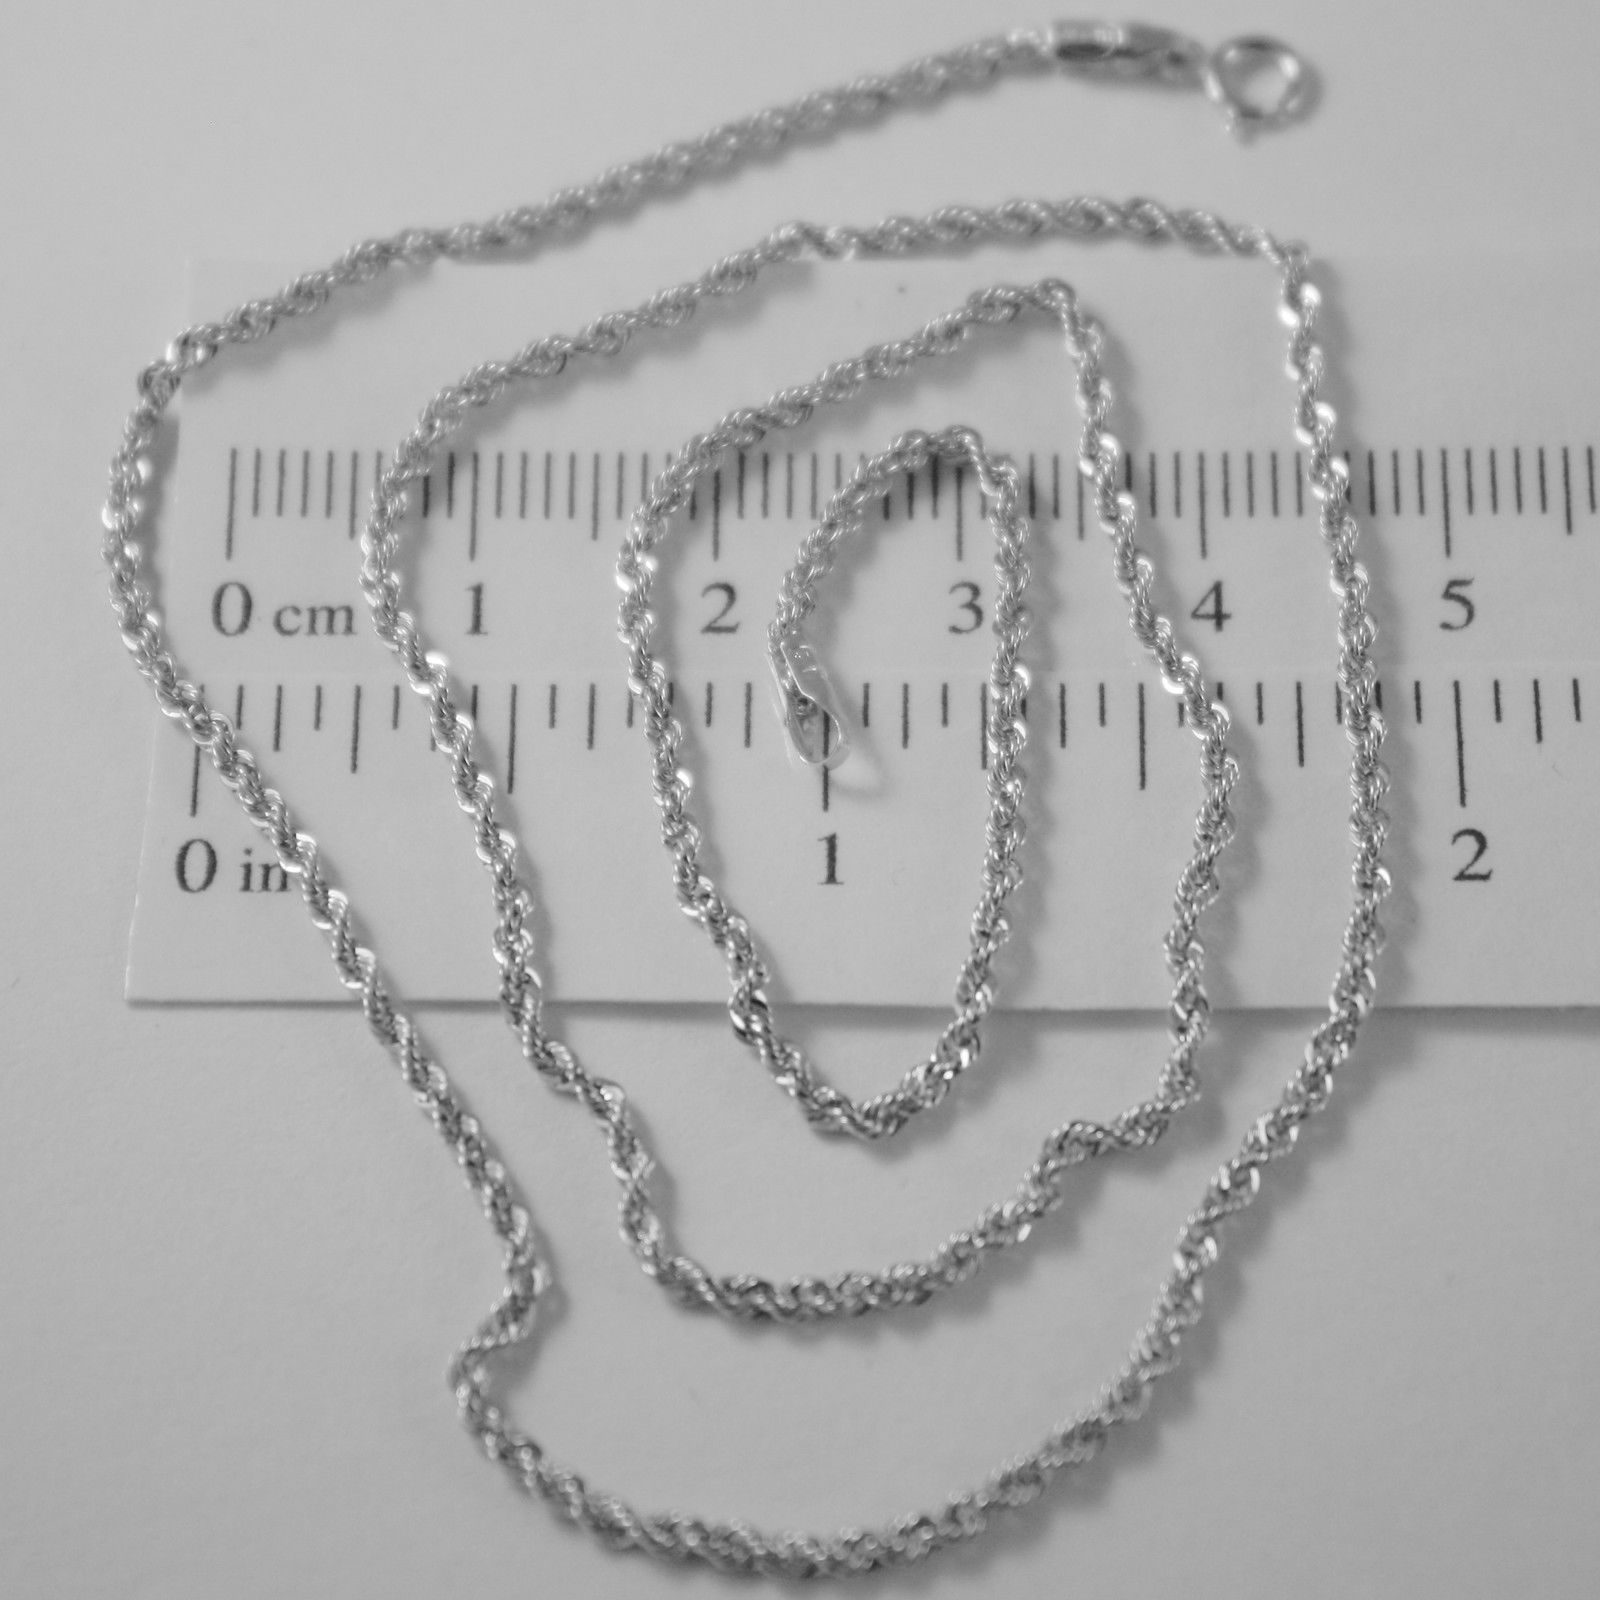 CADENA EN ORO BLANCO 18K, CUERDA 2 MM, COLLAR, 45 CM, MADE IN ITALY, ITALIA